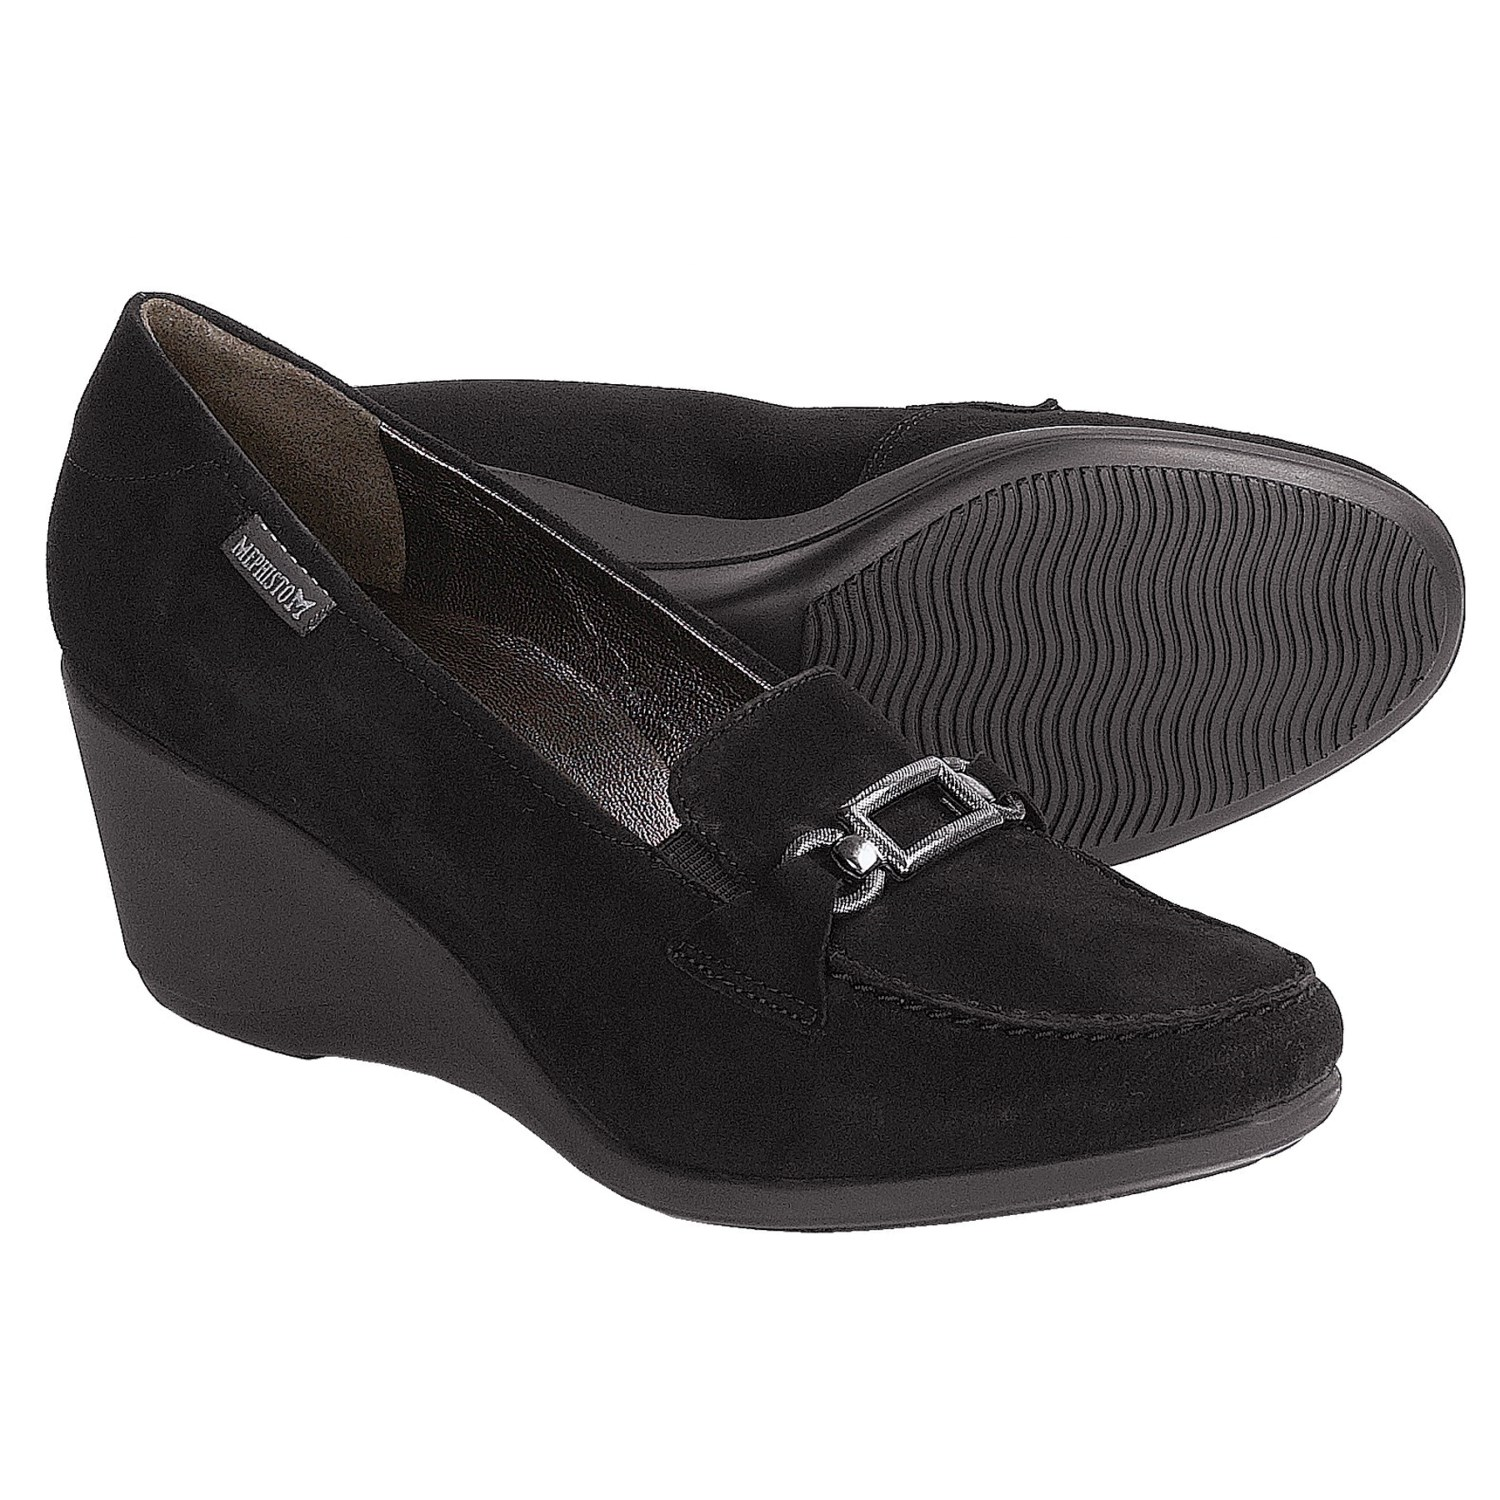 Mephisto Agueda Shoes - Wedge Heel (For Women) in Black Suede